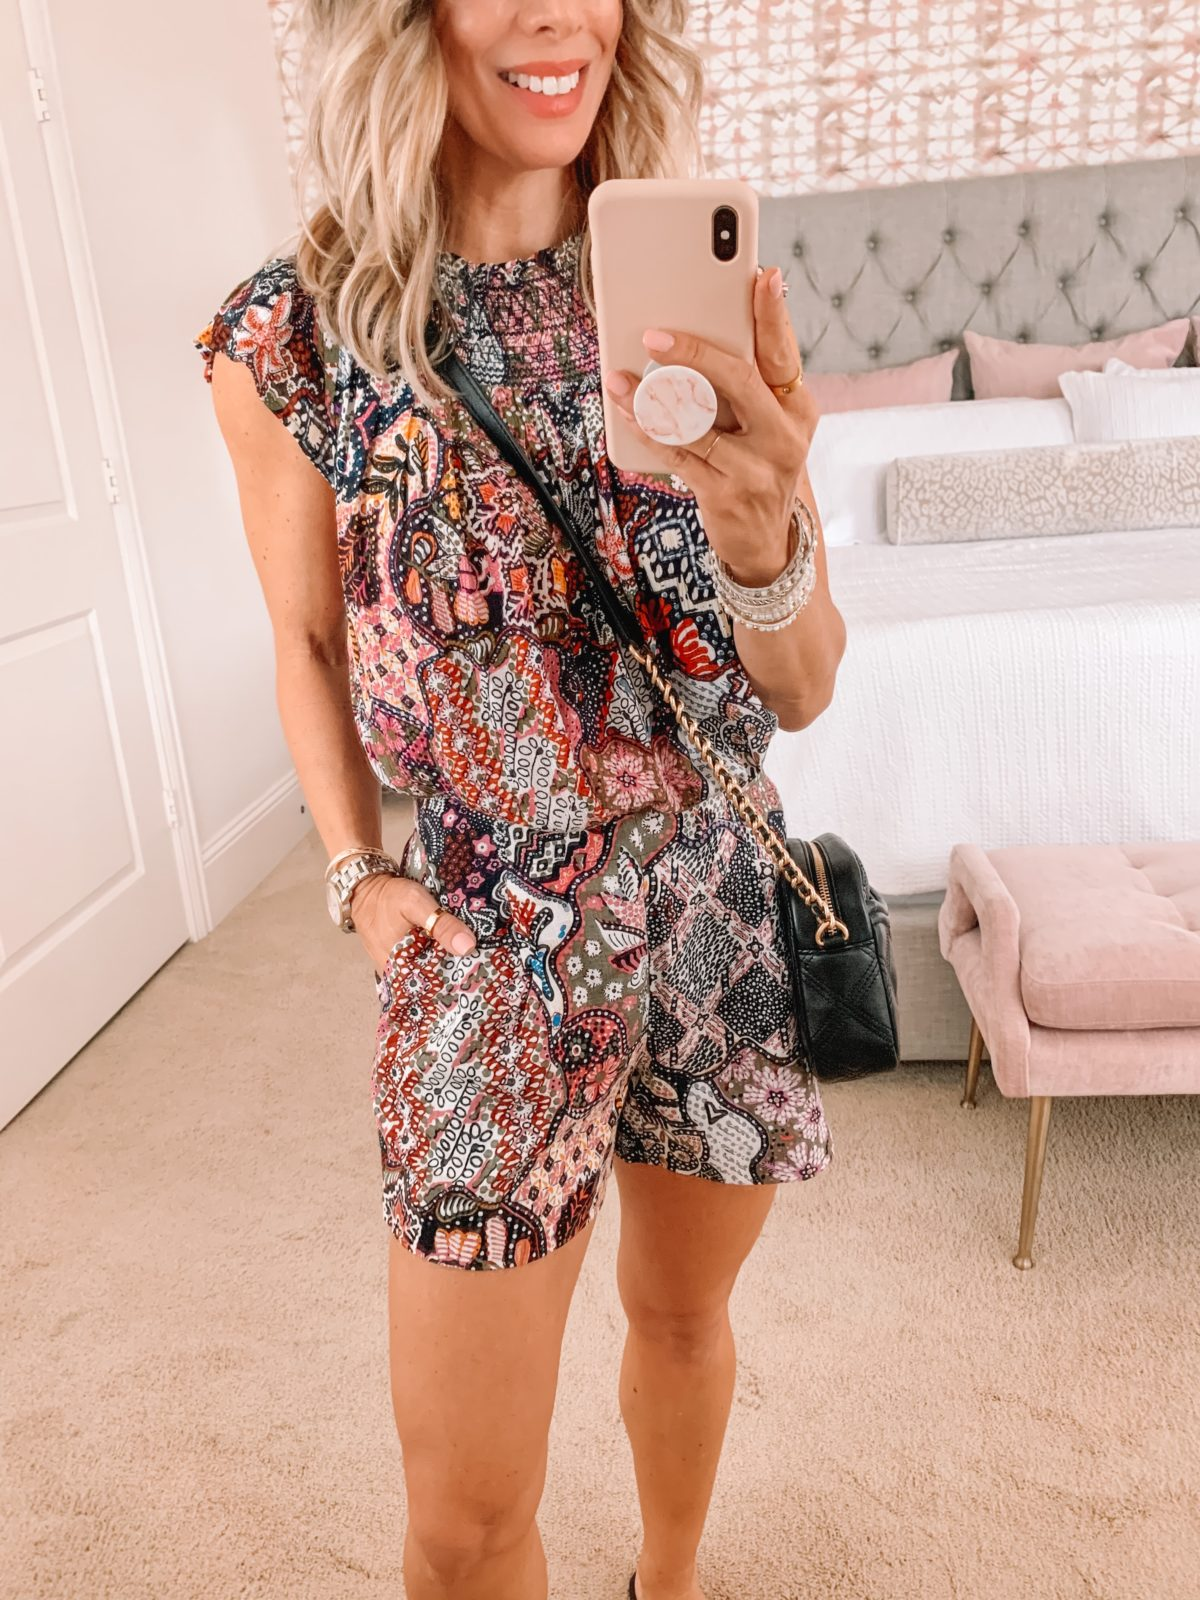 Dressing Room Finds LOFT, Paisley Print TOp and matching Shorts, Crossbody